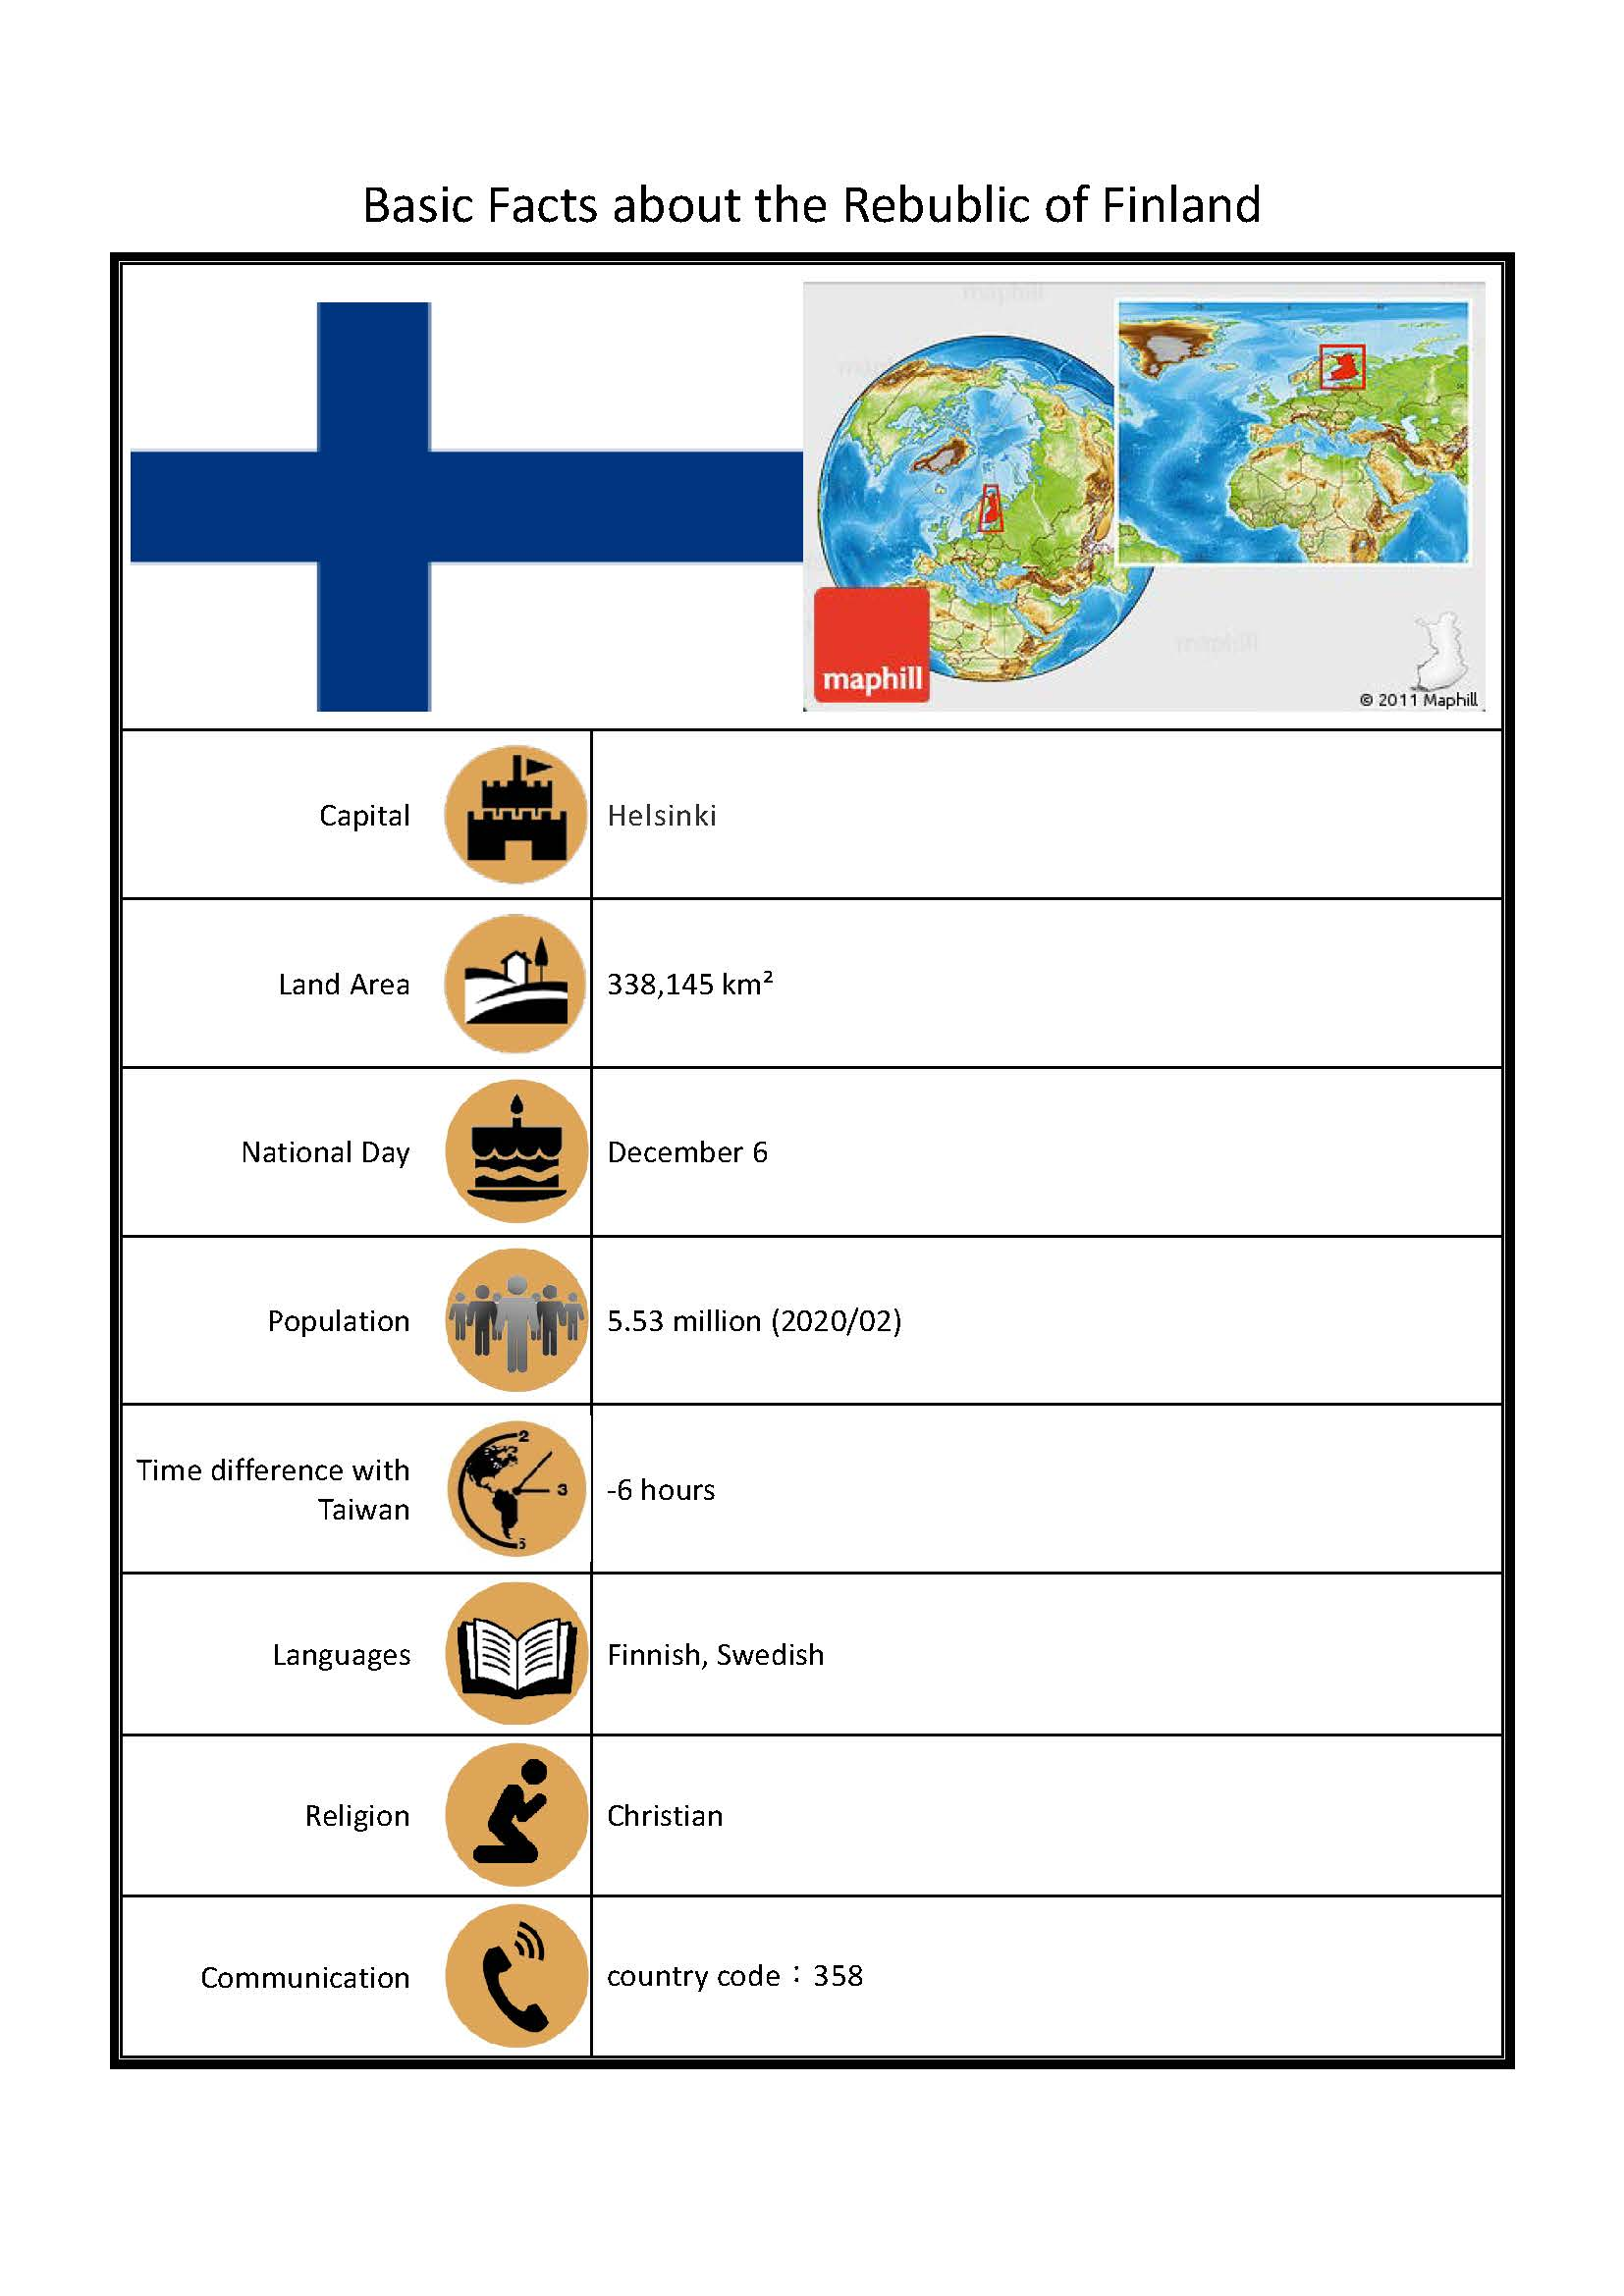 The Rebublic of Finland